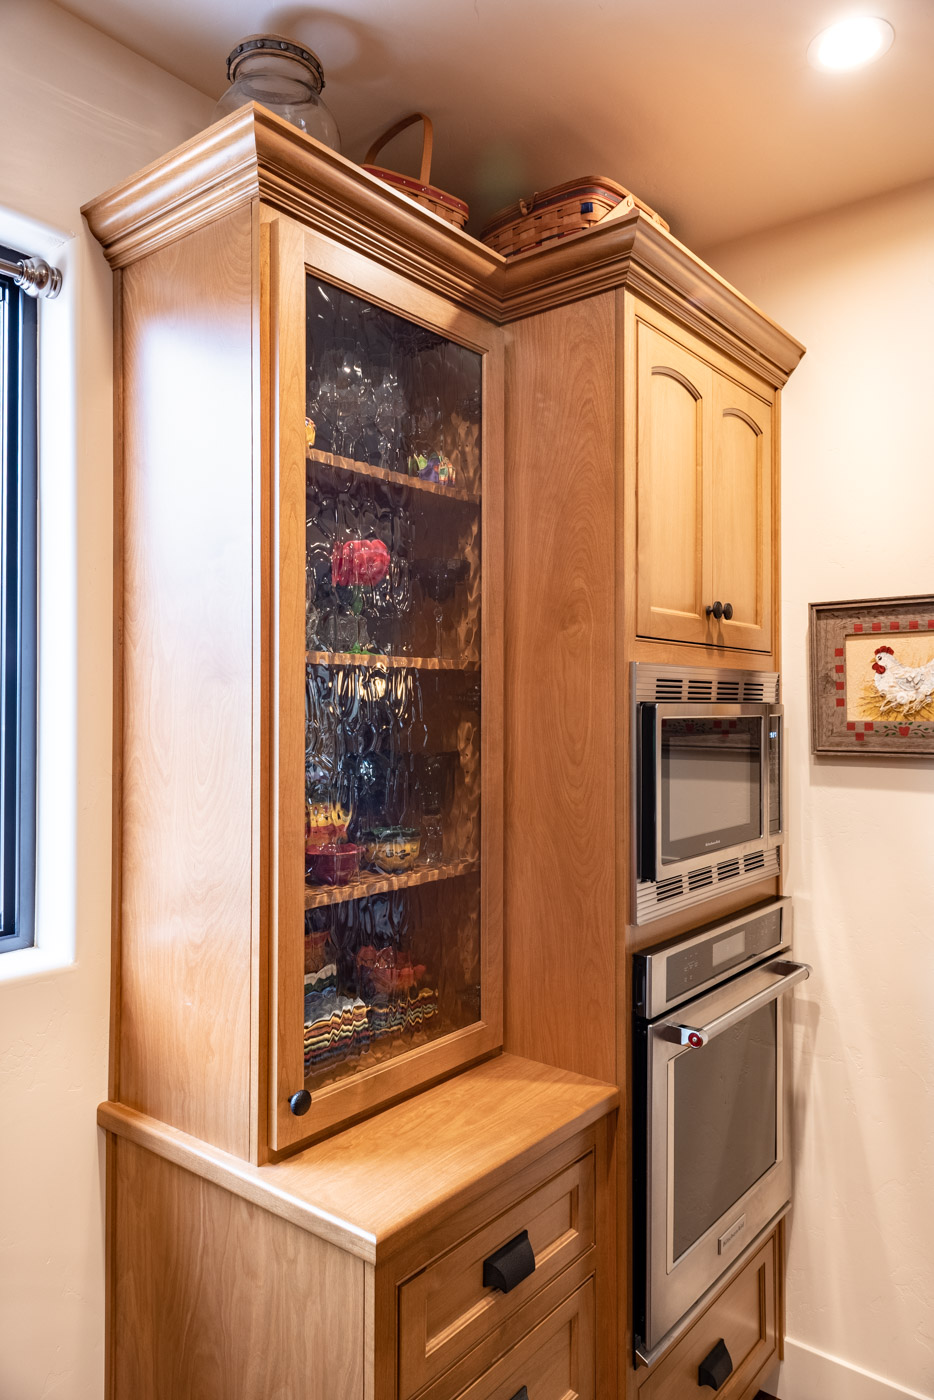 Tuscan Artisan custom stained Alder wood kitchen cabinets display